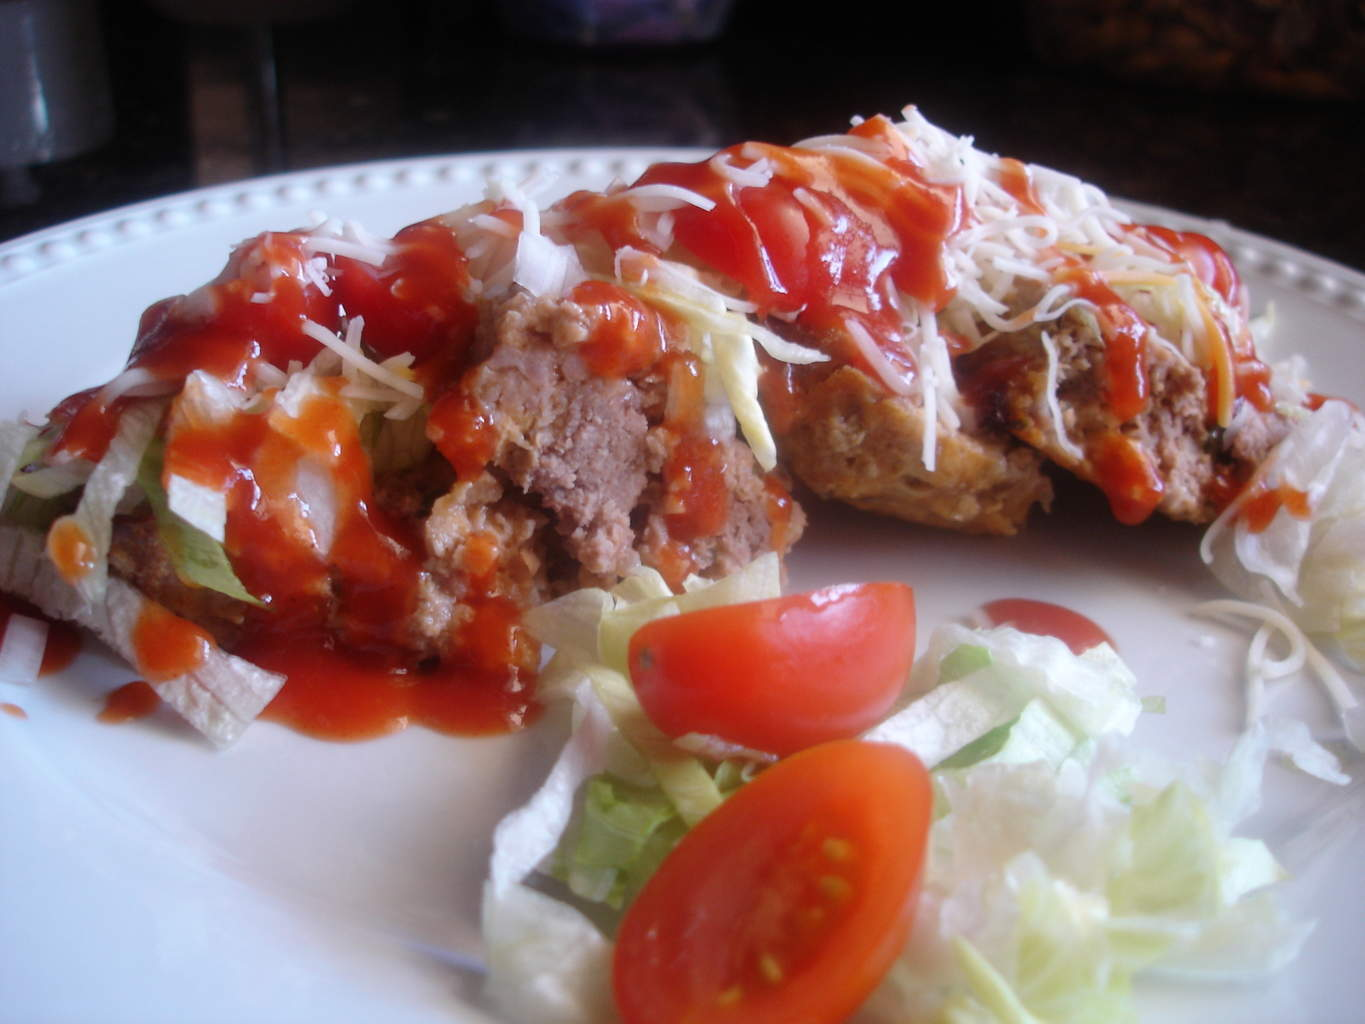 ... it's time for a meatloaf sandwich. Now, it's meatloaf……again